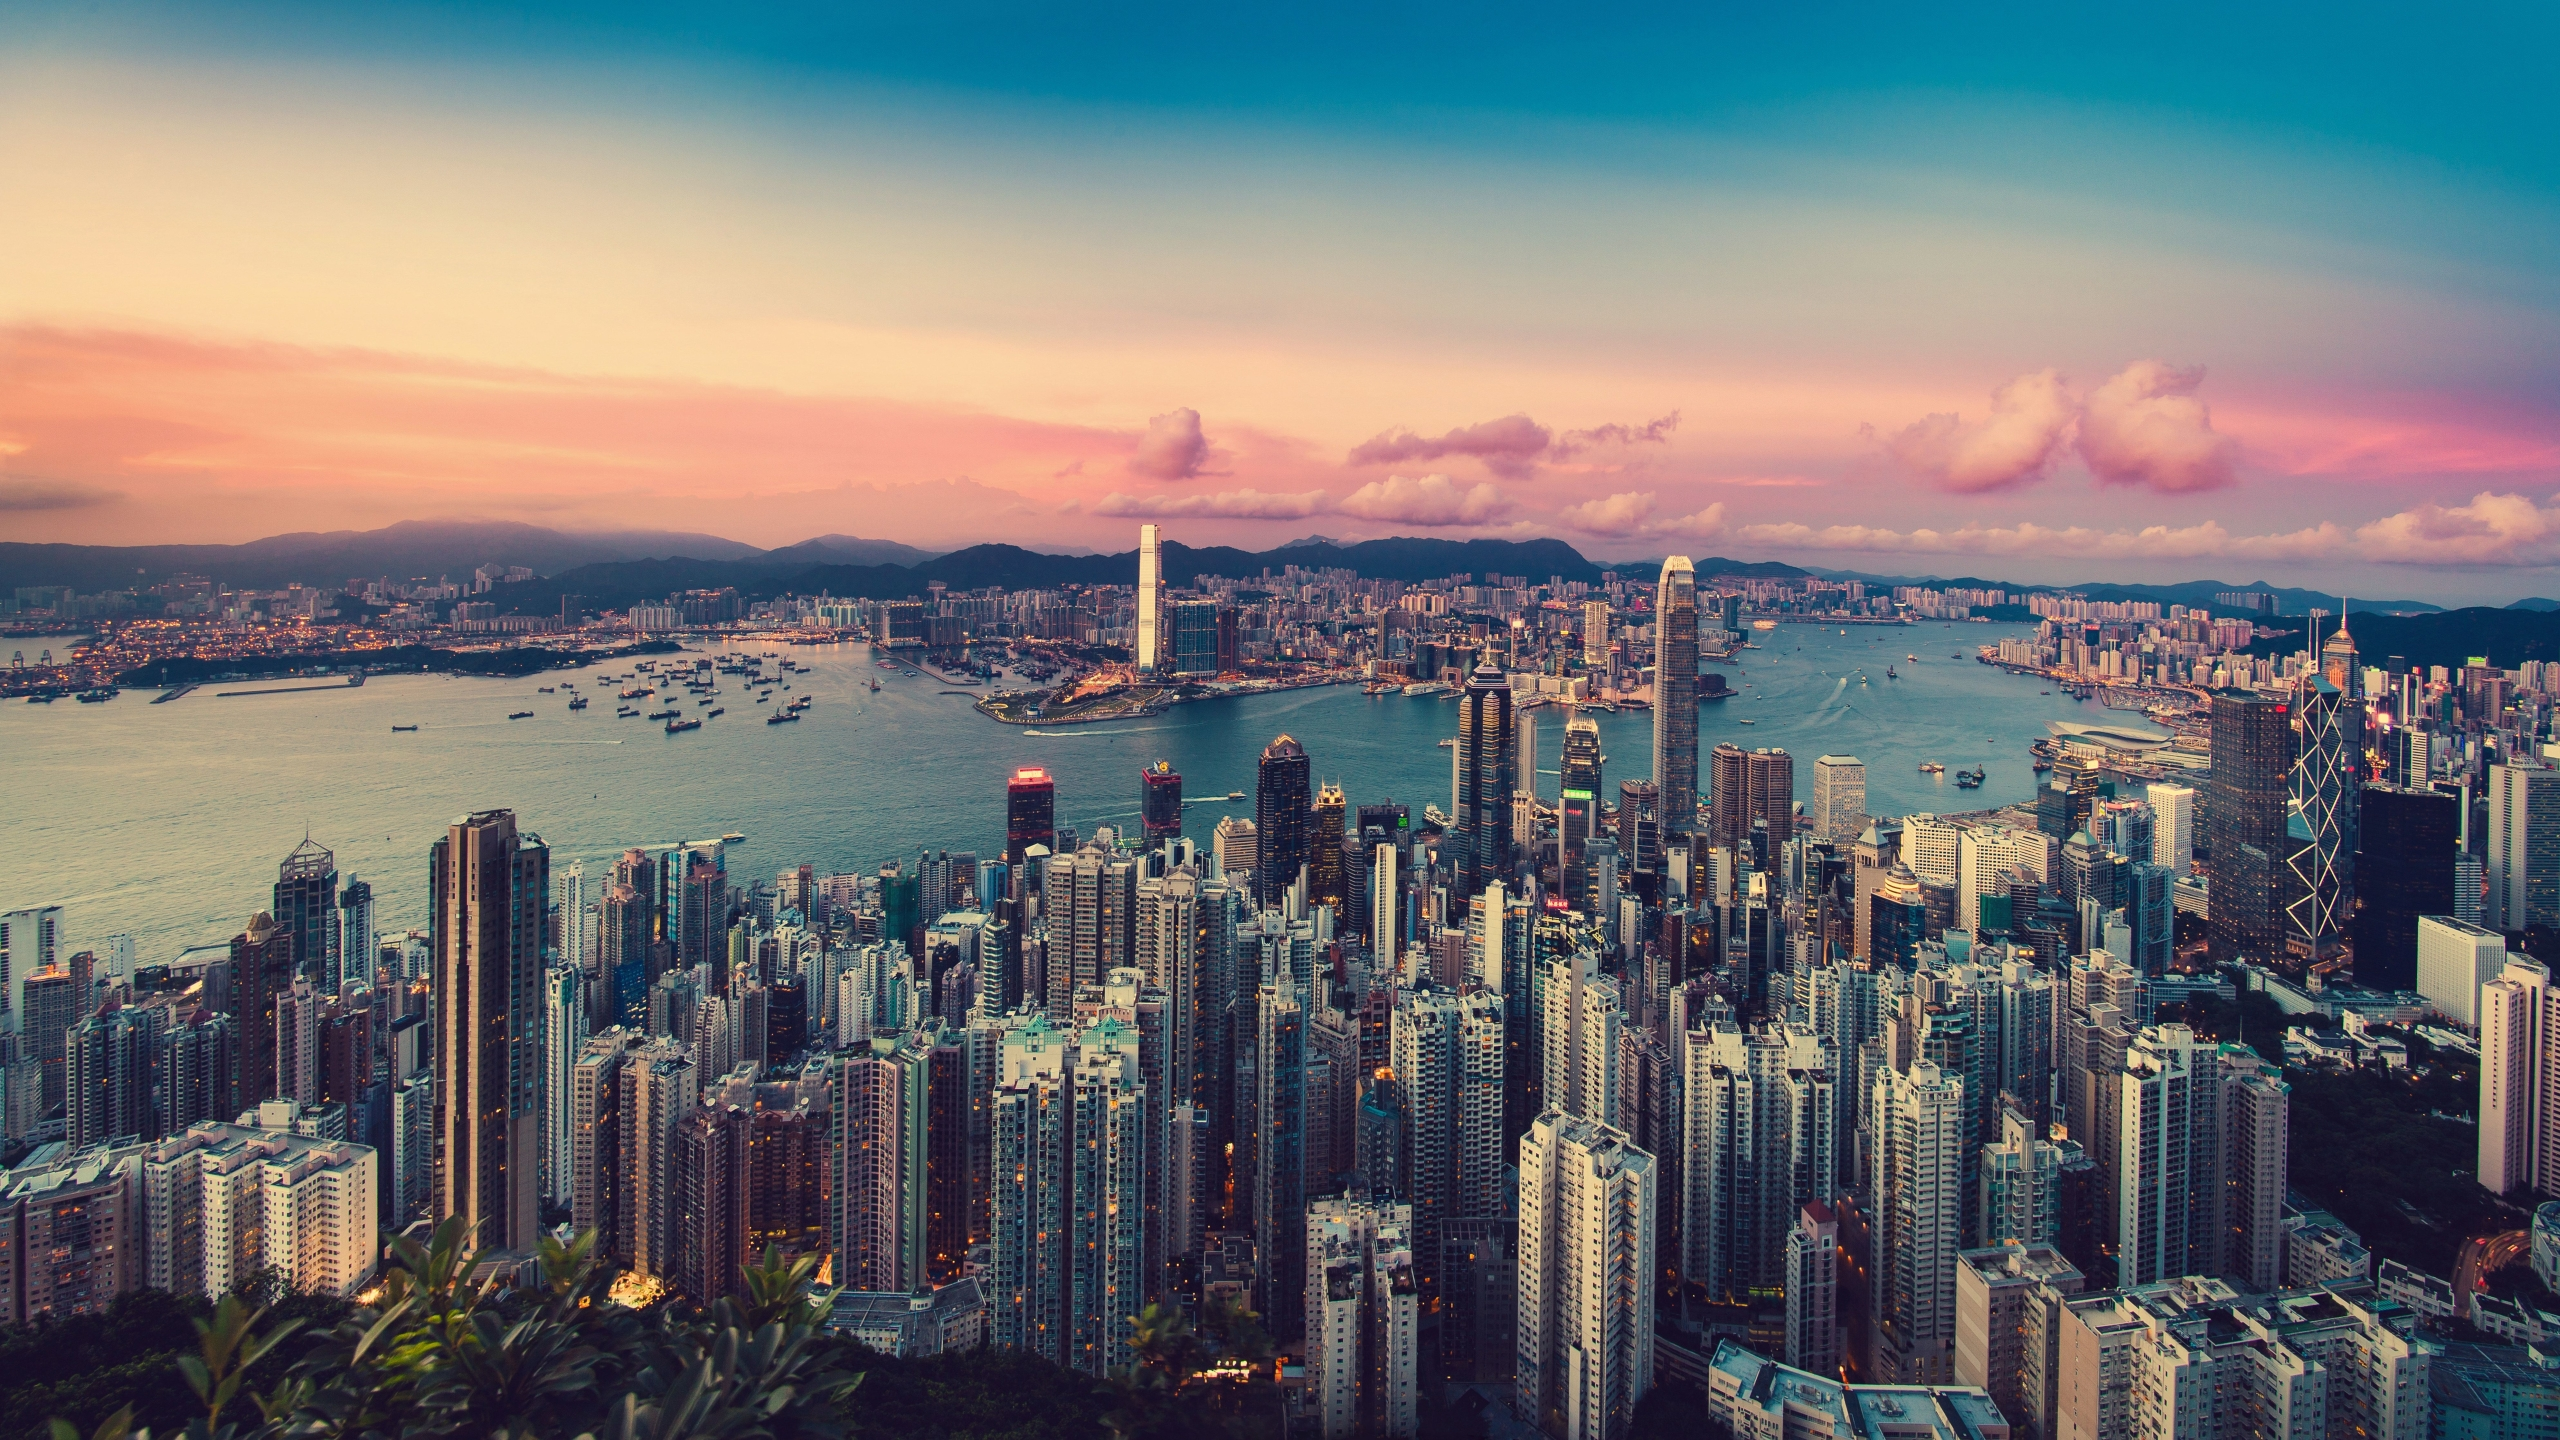 2560x1440 Hong Kong 8k 1440p Resolution Wallpaper Hd City